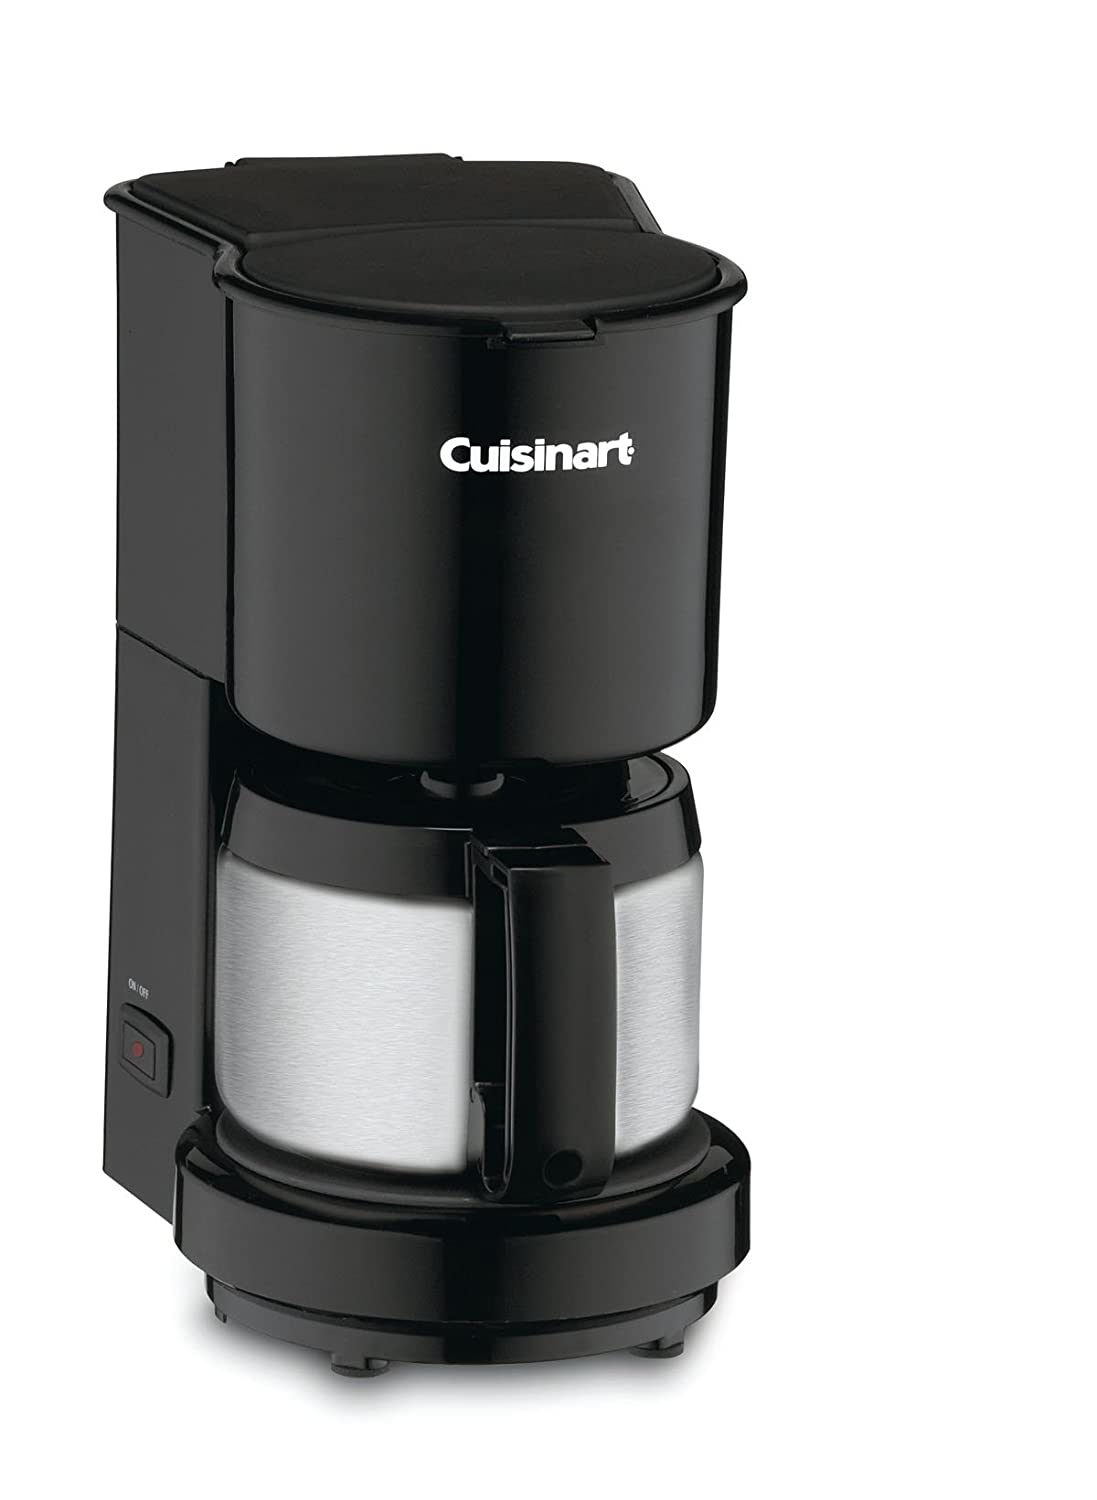 Cuisinart Dcc 450bk 4 Cup Coffeemaker With Stainless Steel